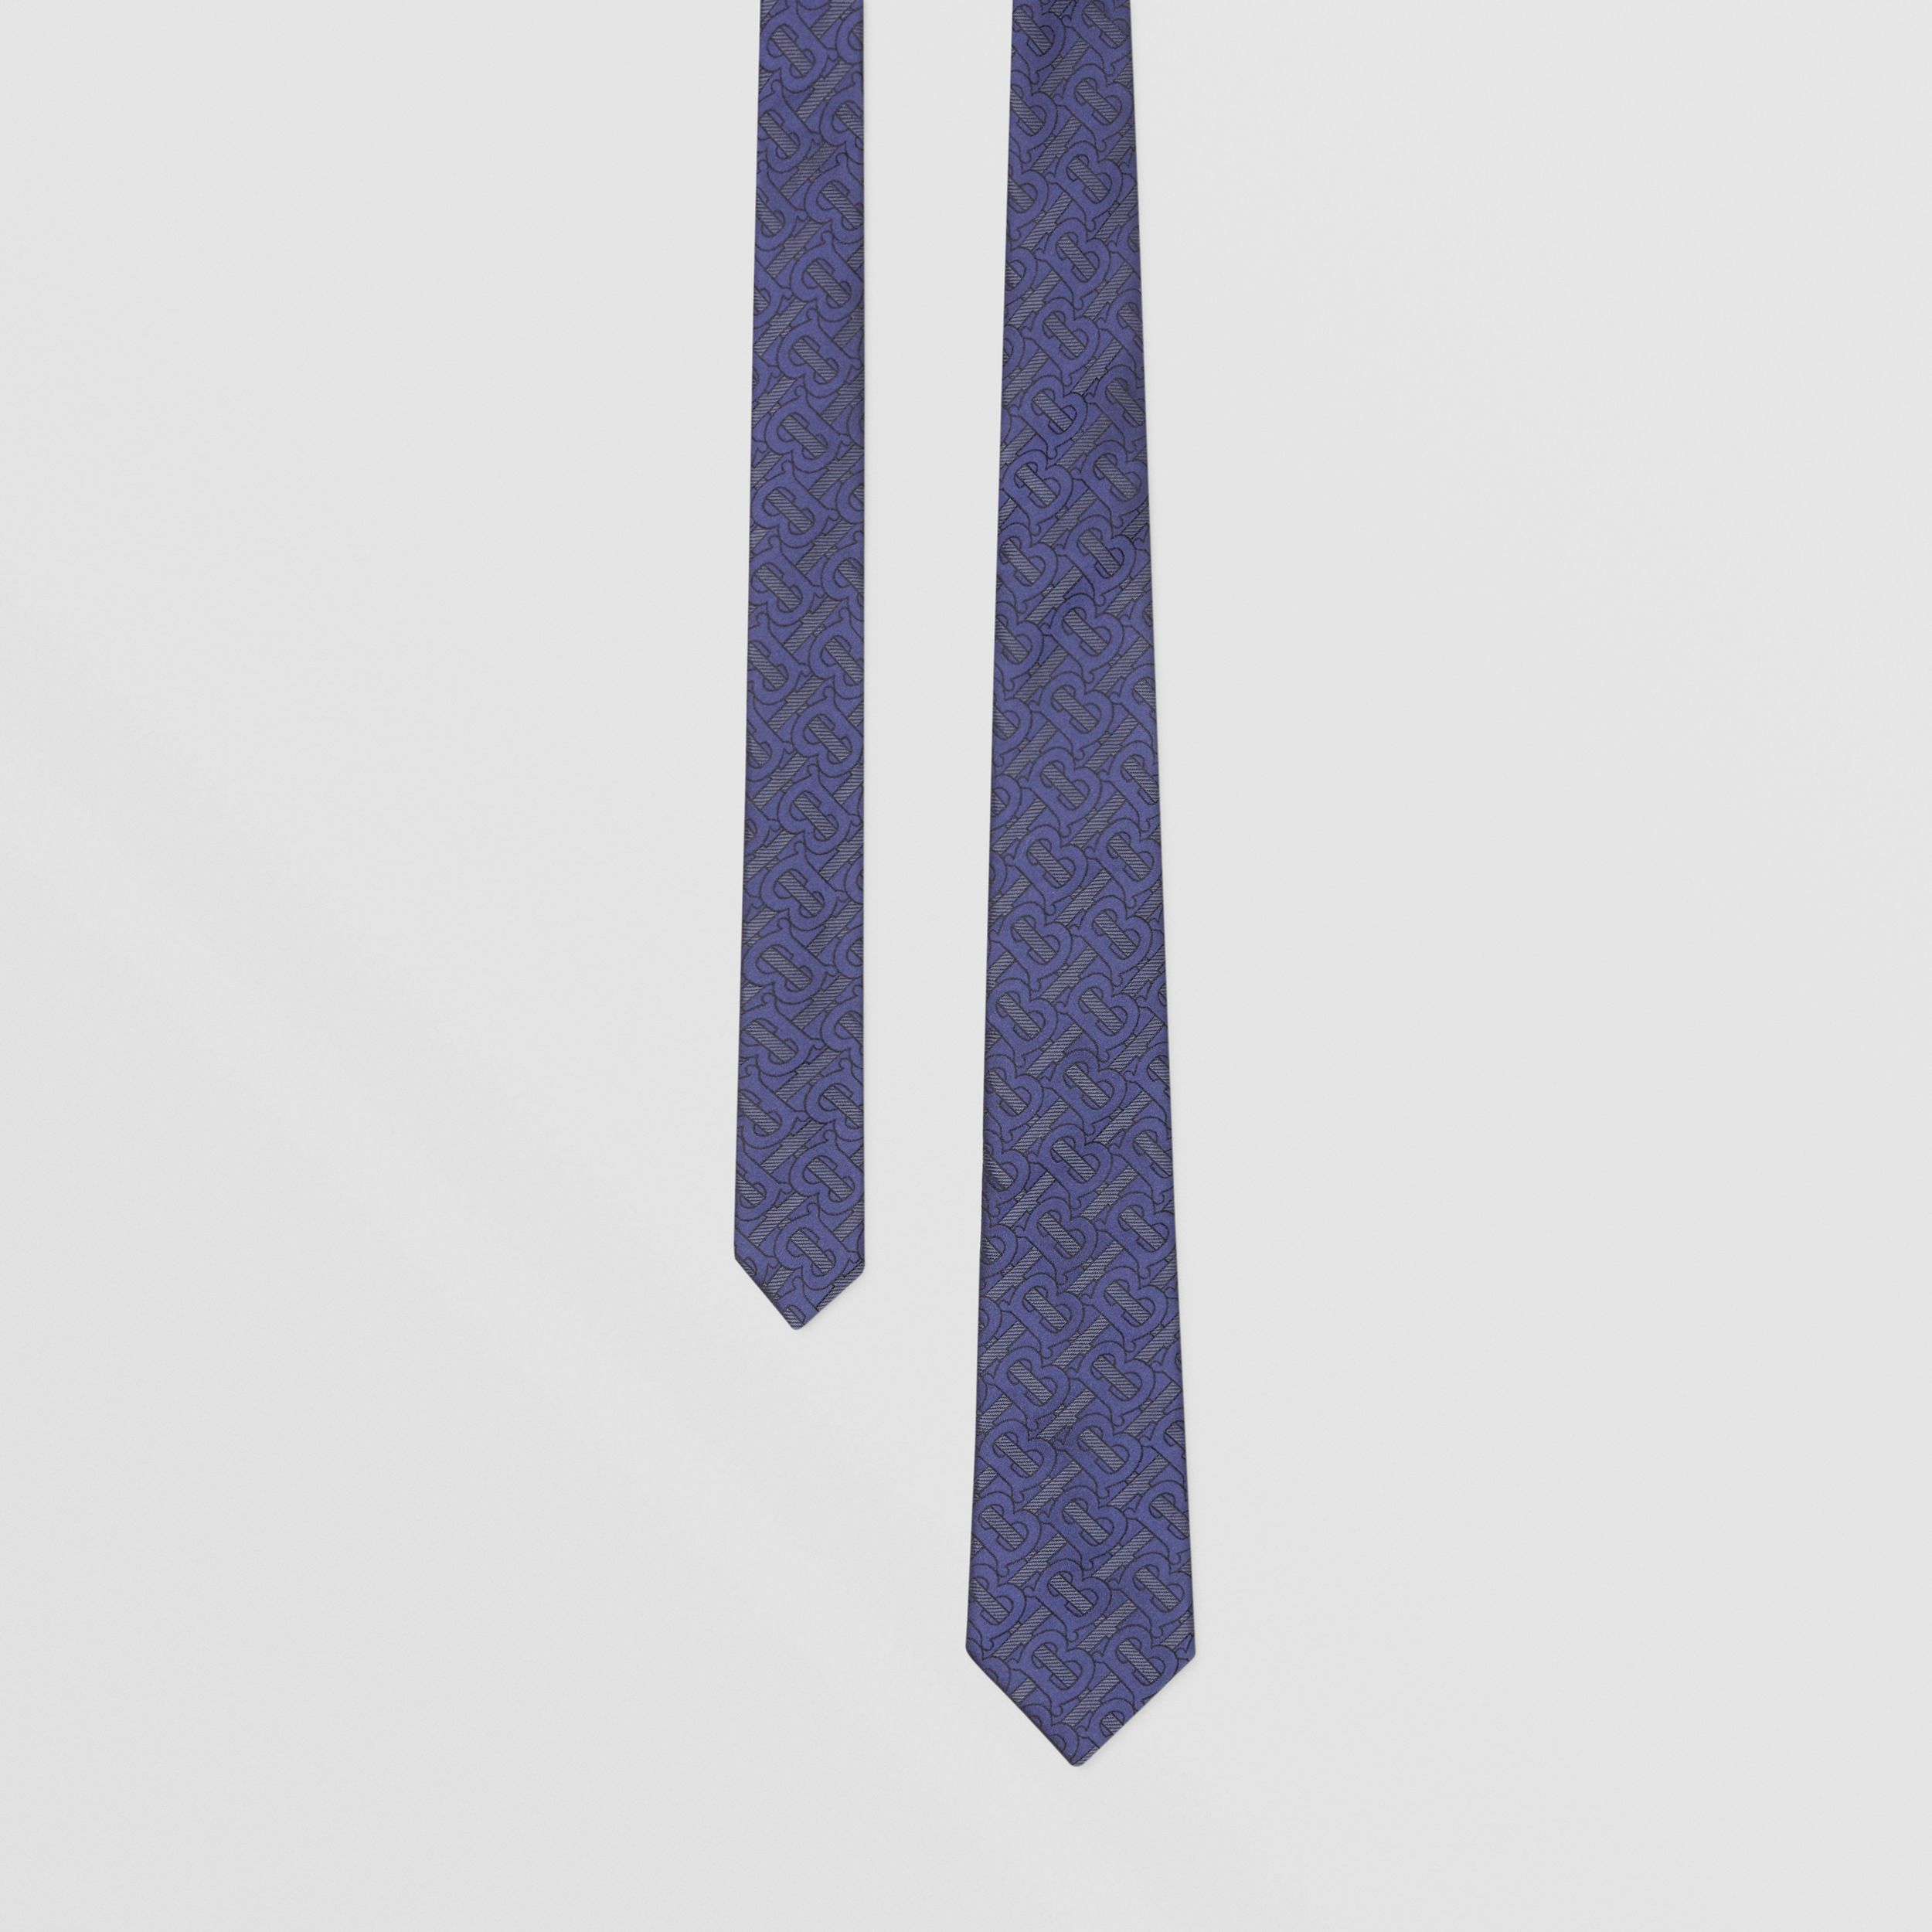 Classic Cut Monogram Silk Blend Jacquard Tie in Bright Indigo - Men | Burberry - 1